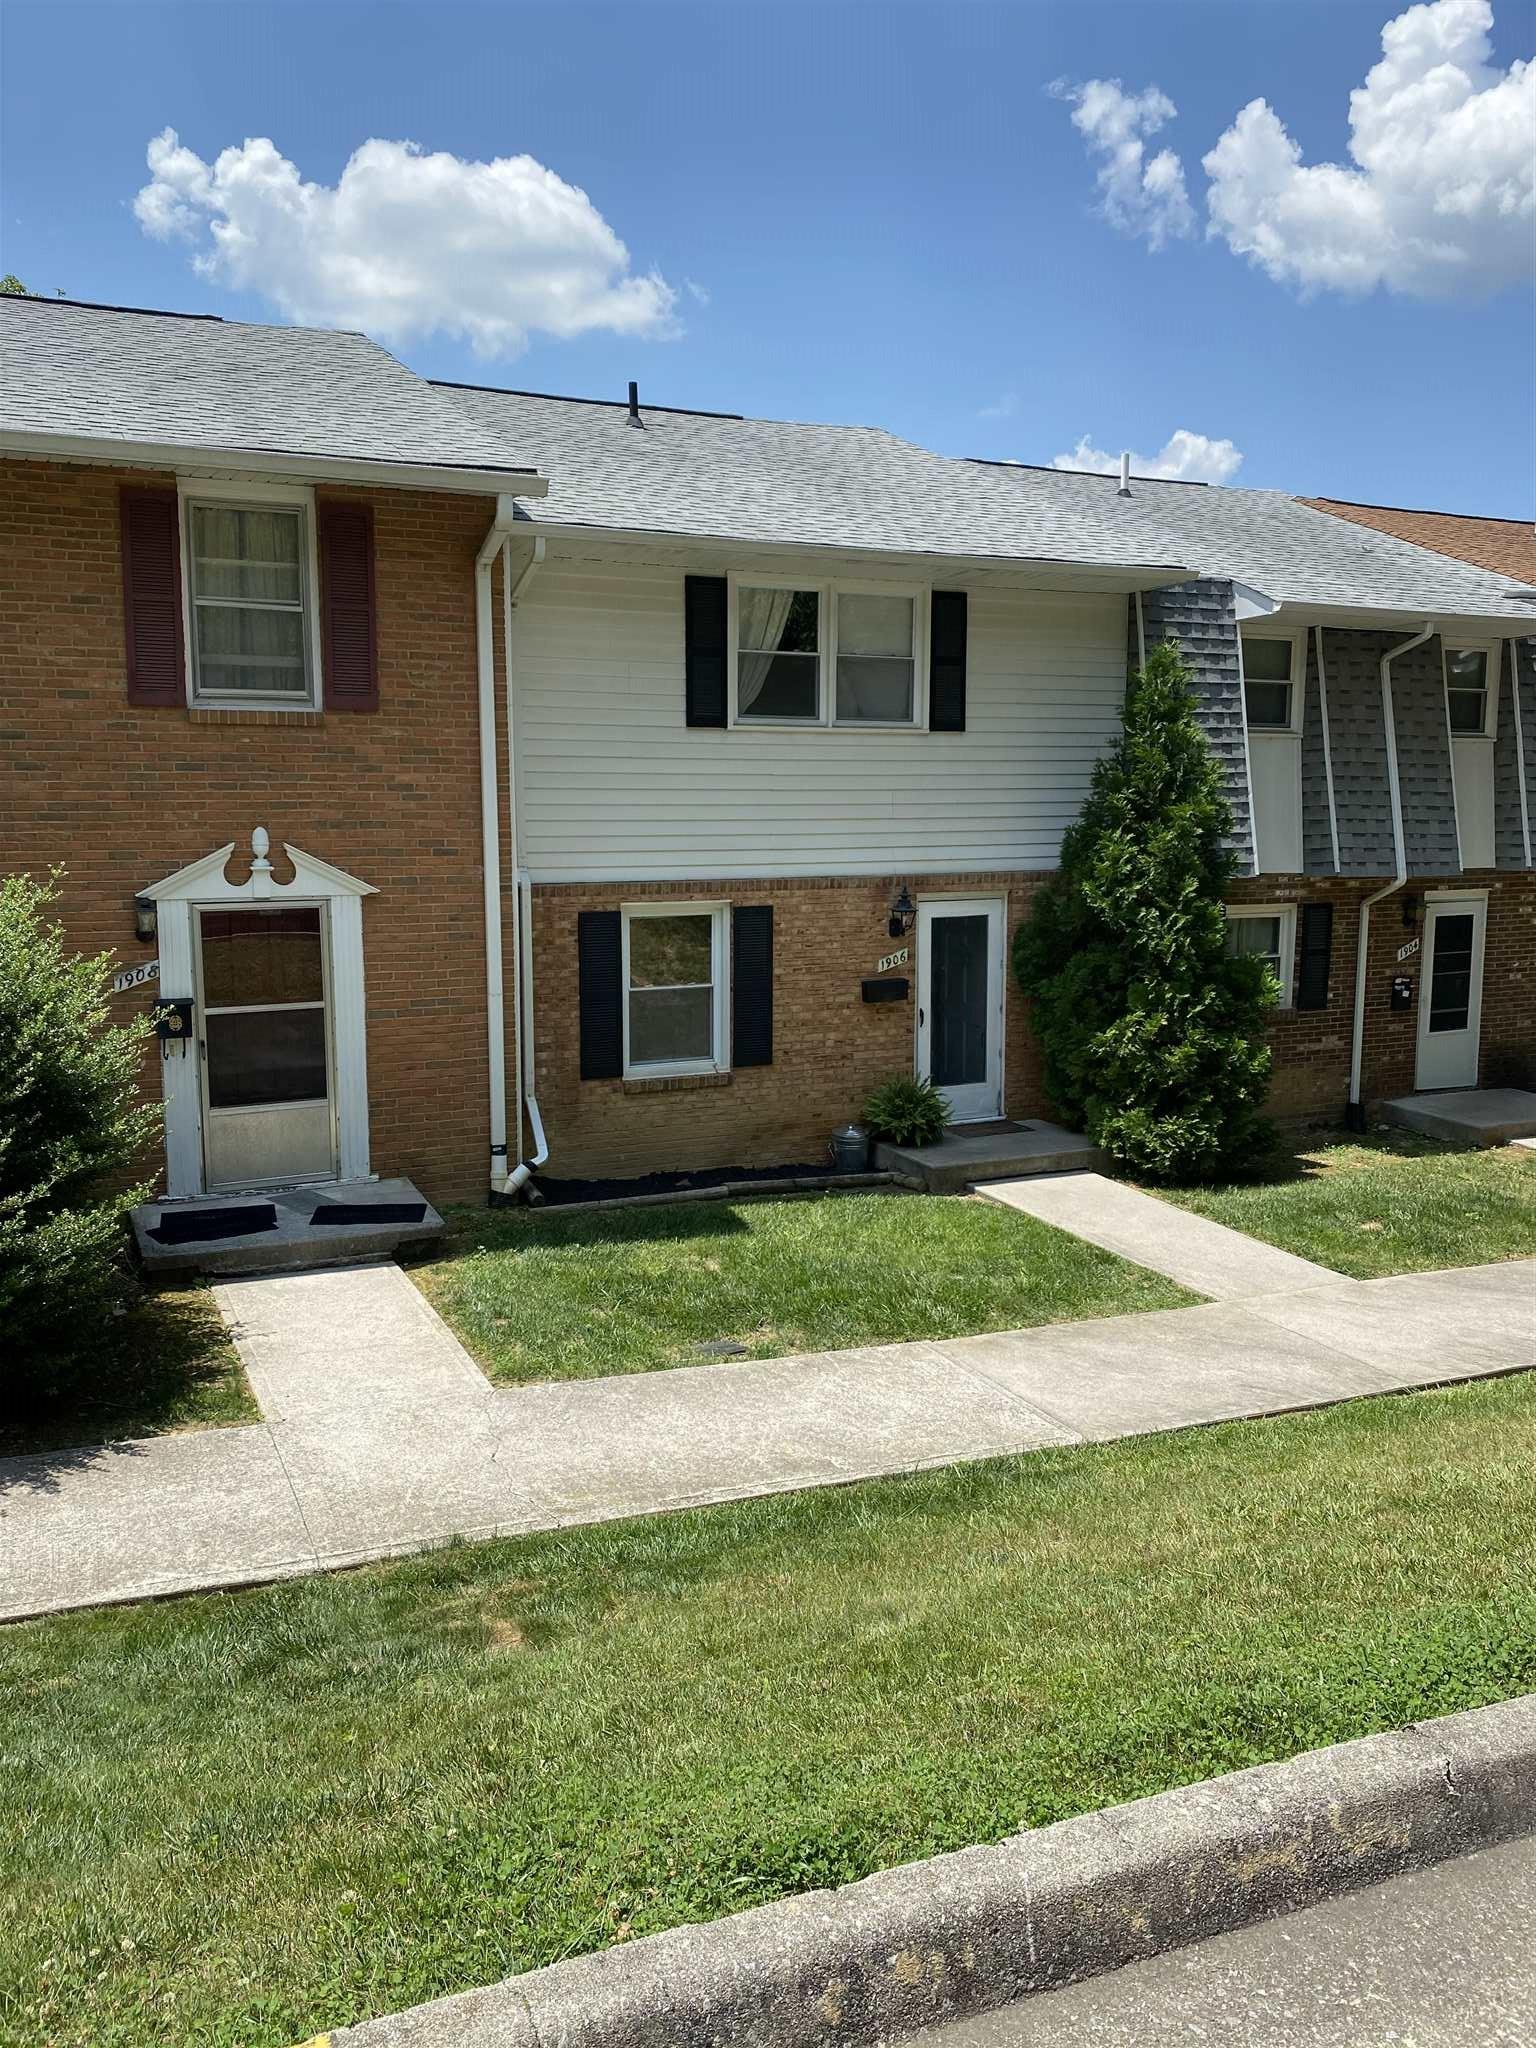 Three level Townhome, Near Town Park and And BT. Rented through June 1st. 2021.  Contract Subject to Seller's ability to do a 1031 Exchange.  Text or Email tenants.  24 hr notice required.  Check agent remarks for tenant info. COVD-19 Regulations Apply. All Parties to wear Mask, Gloves, Shoe covering will be provided.  Please maintain a property preview time allocation of 15 min or less.  Careful not to let cats out.  One dog will be loose in unit.  Dog is deaf.